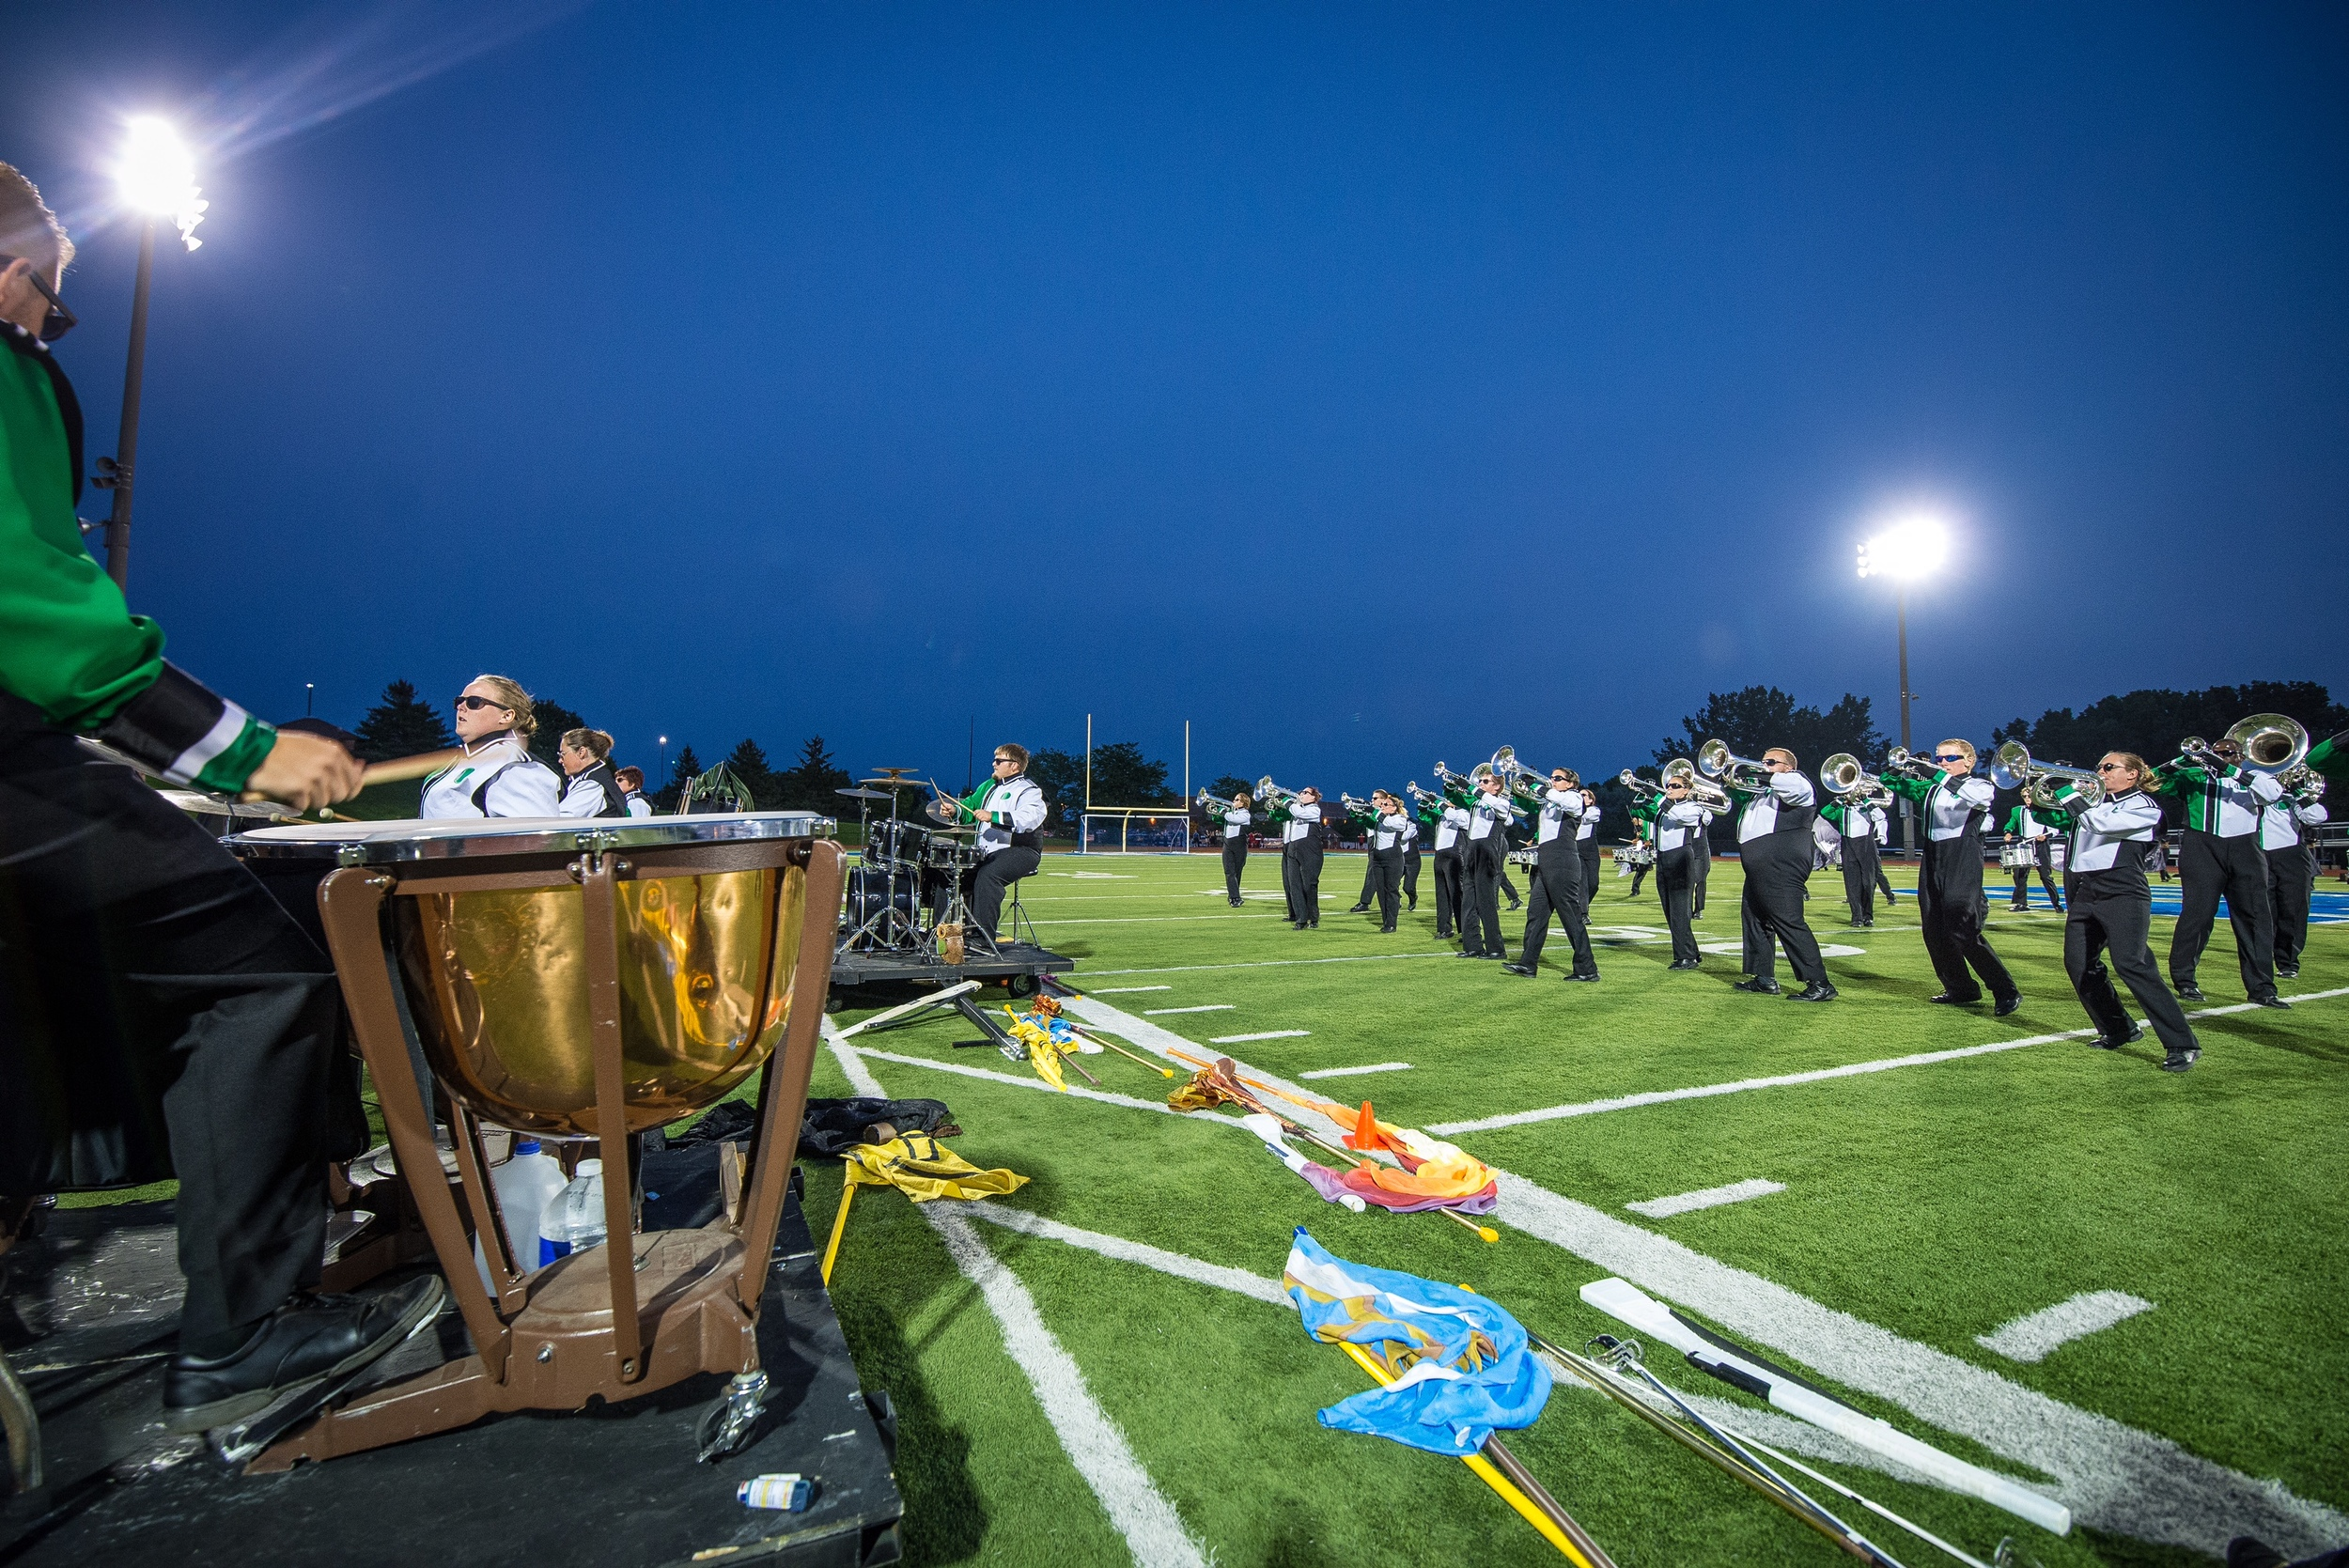 """Members of the Govenaires Hornline and Frontline performing the 2015 production """"Outlaw"""" at the Sounds of Minnesota show hosted at St. Thomas Academy in August   Photo provided by TwinCitiesMedia.net   Full Resolution"""